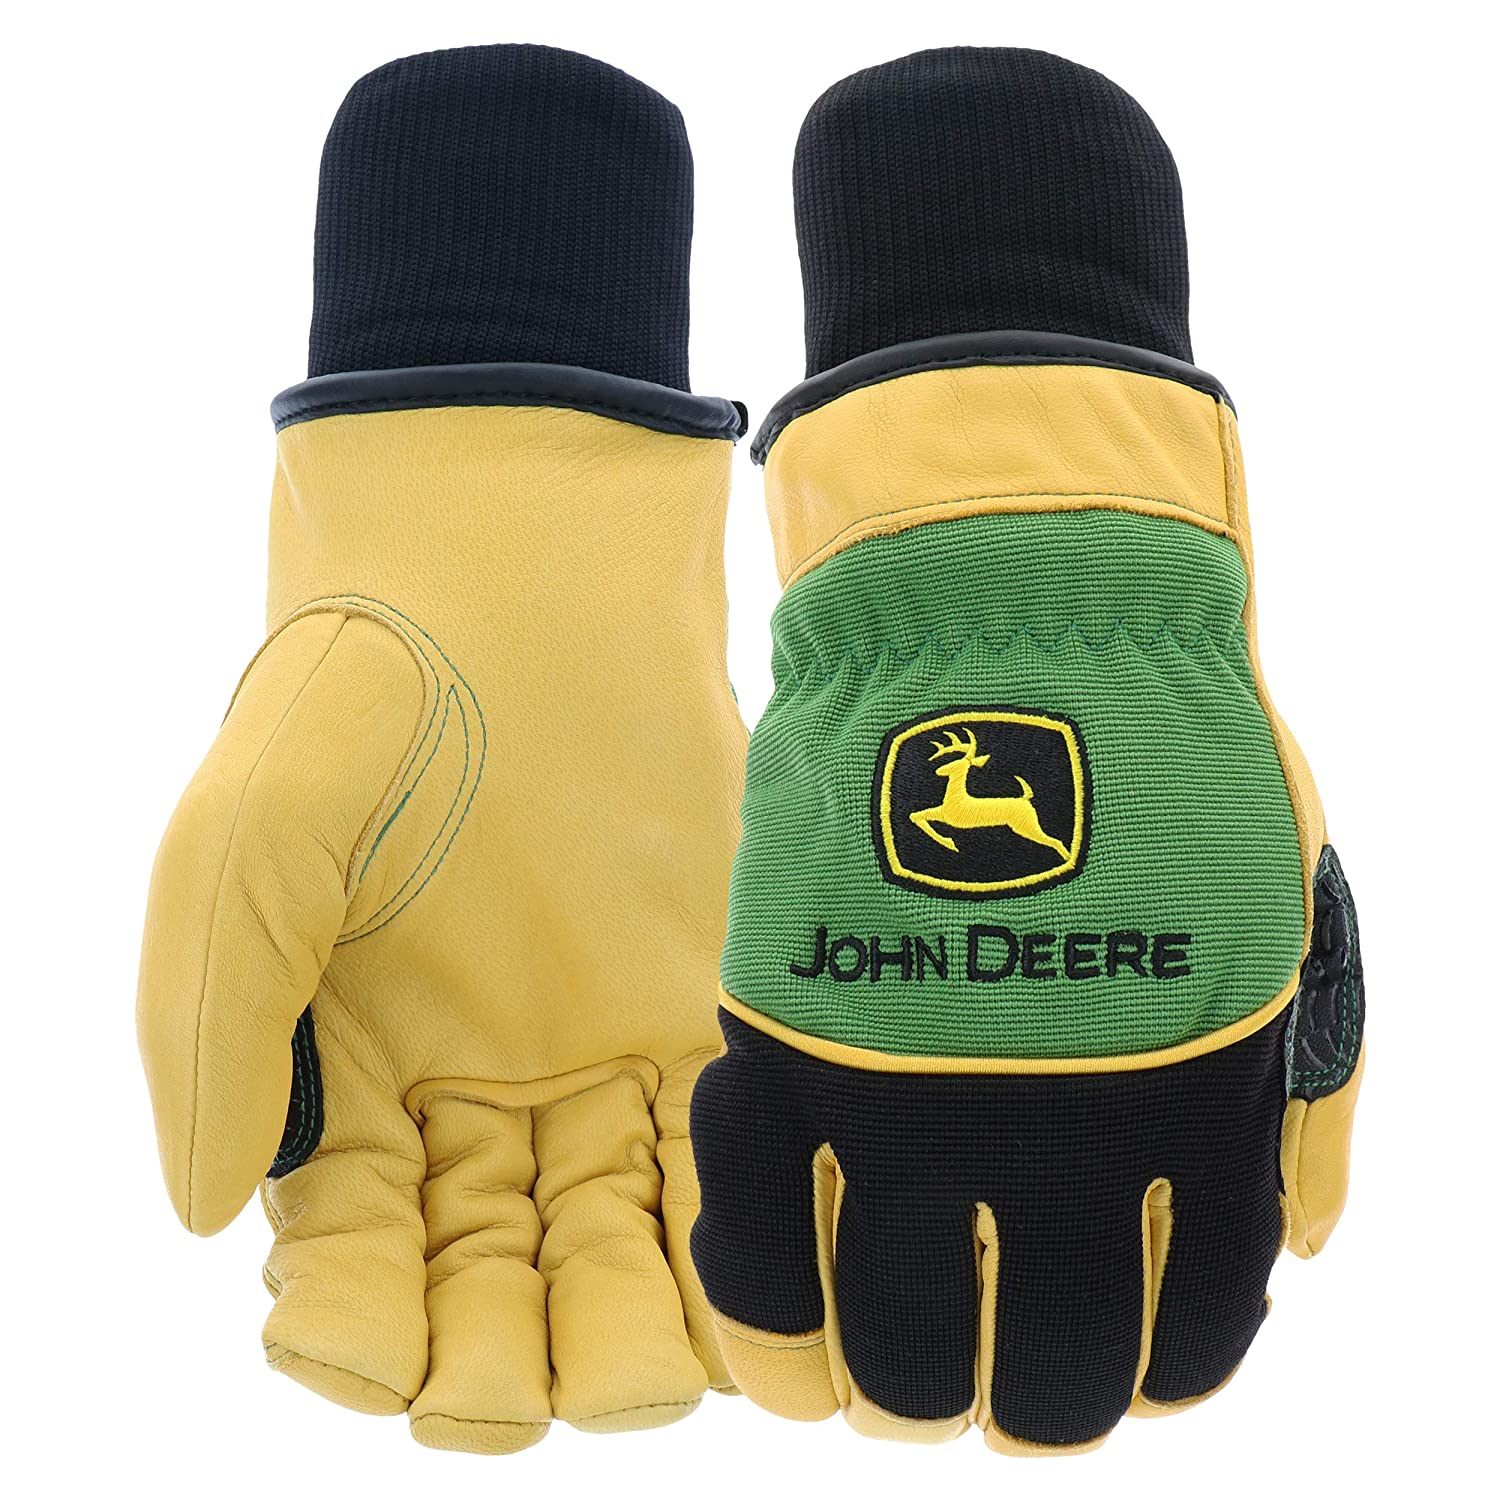 West Chester John Deere JD95040 Grain Deerskin Leather Driver Gloves – [1 pair] Large, Knit wrist, Keystone thumb, Thinsulate Lining